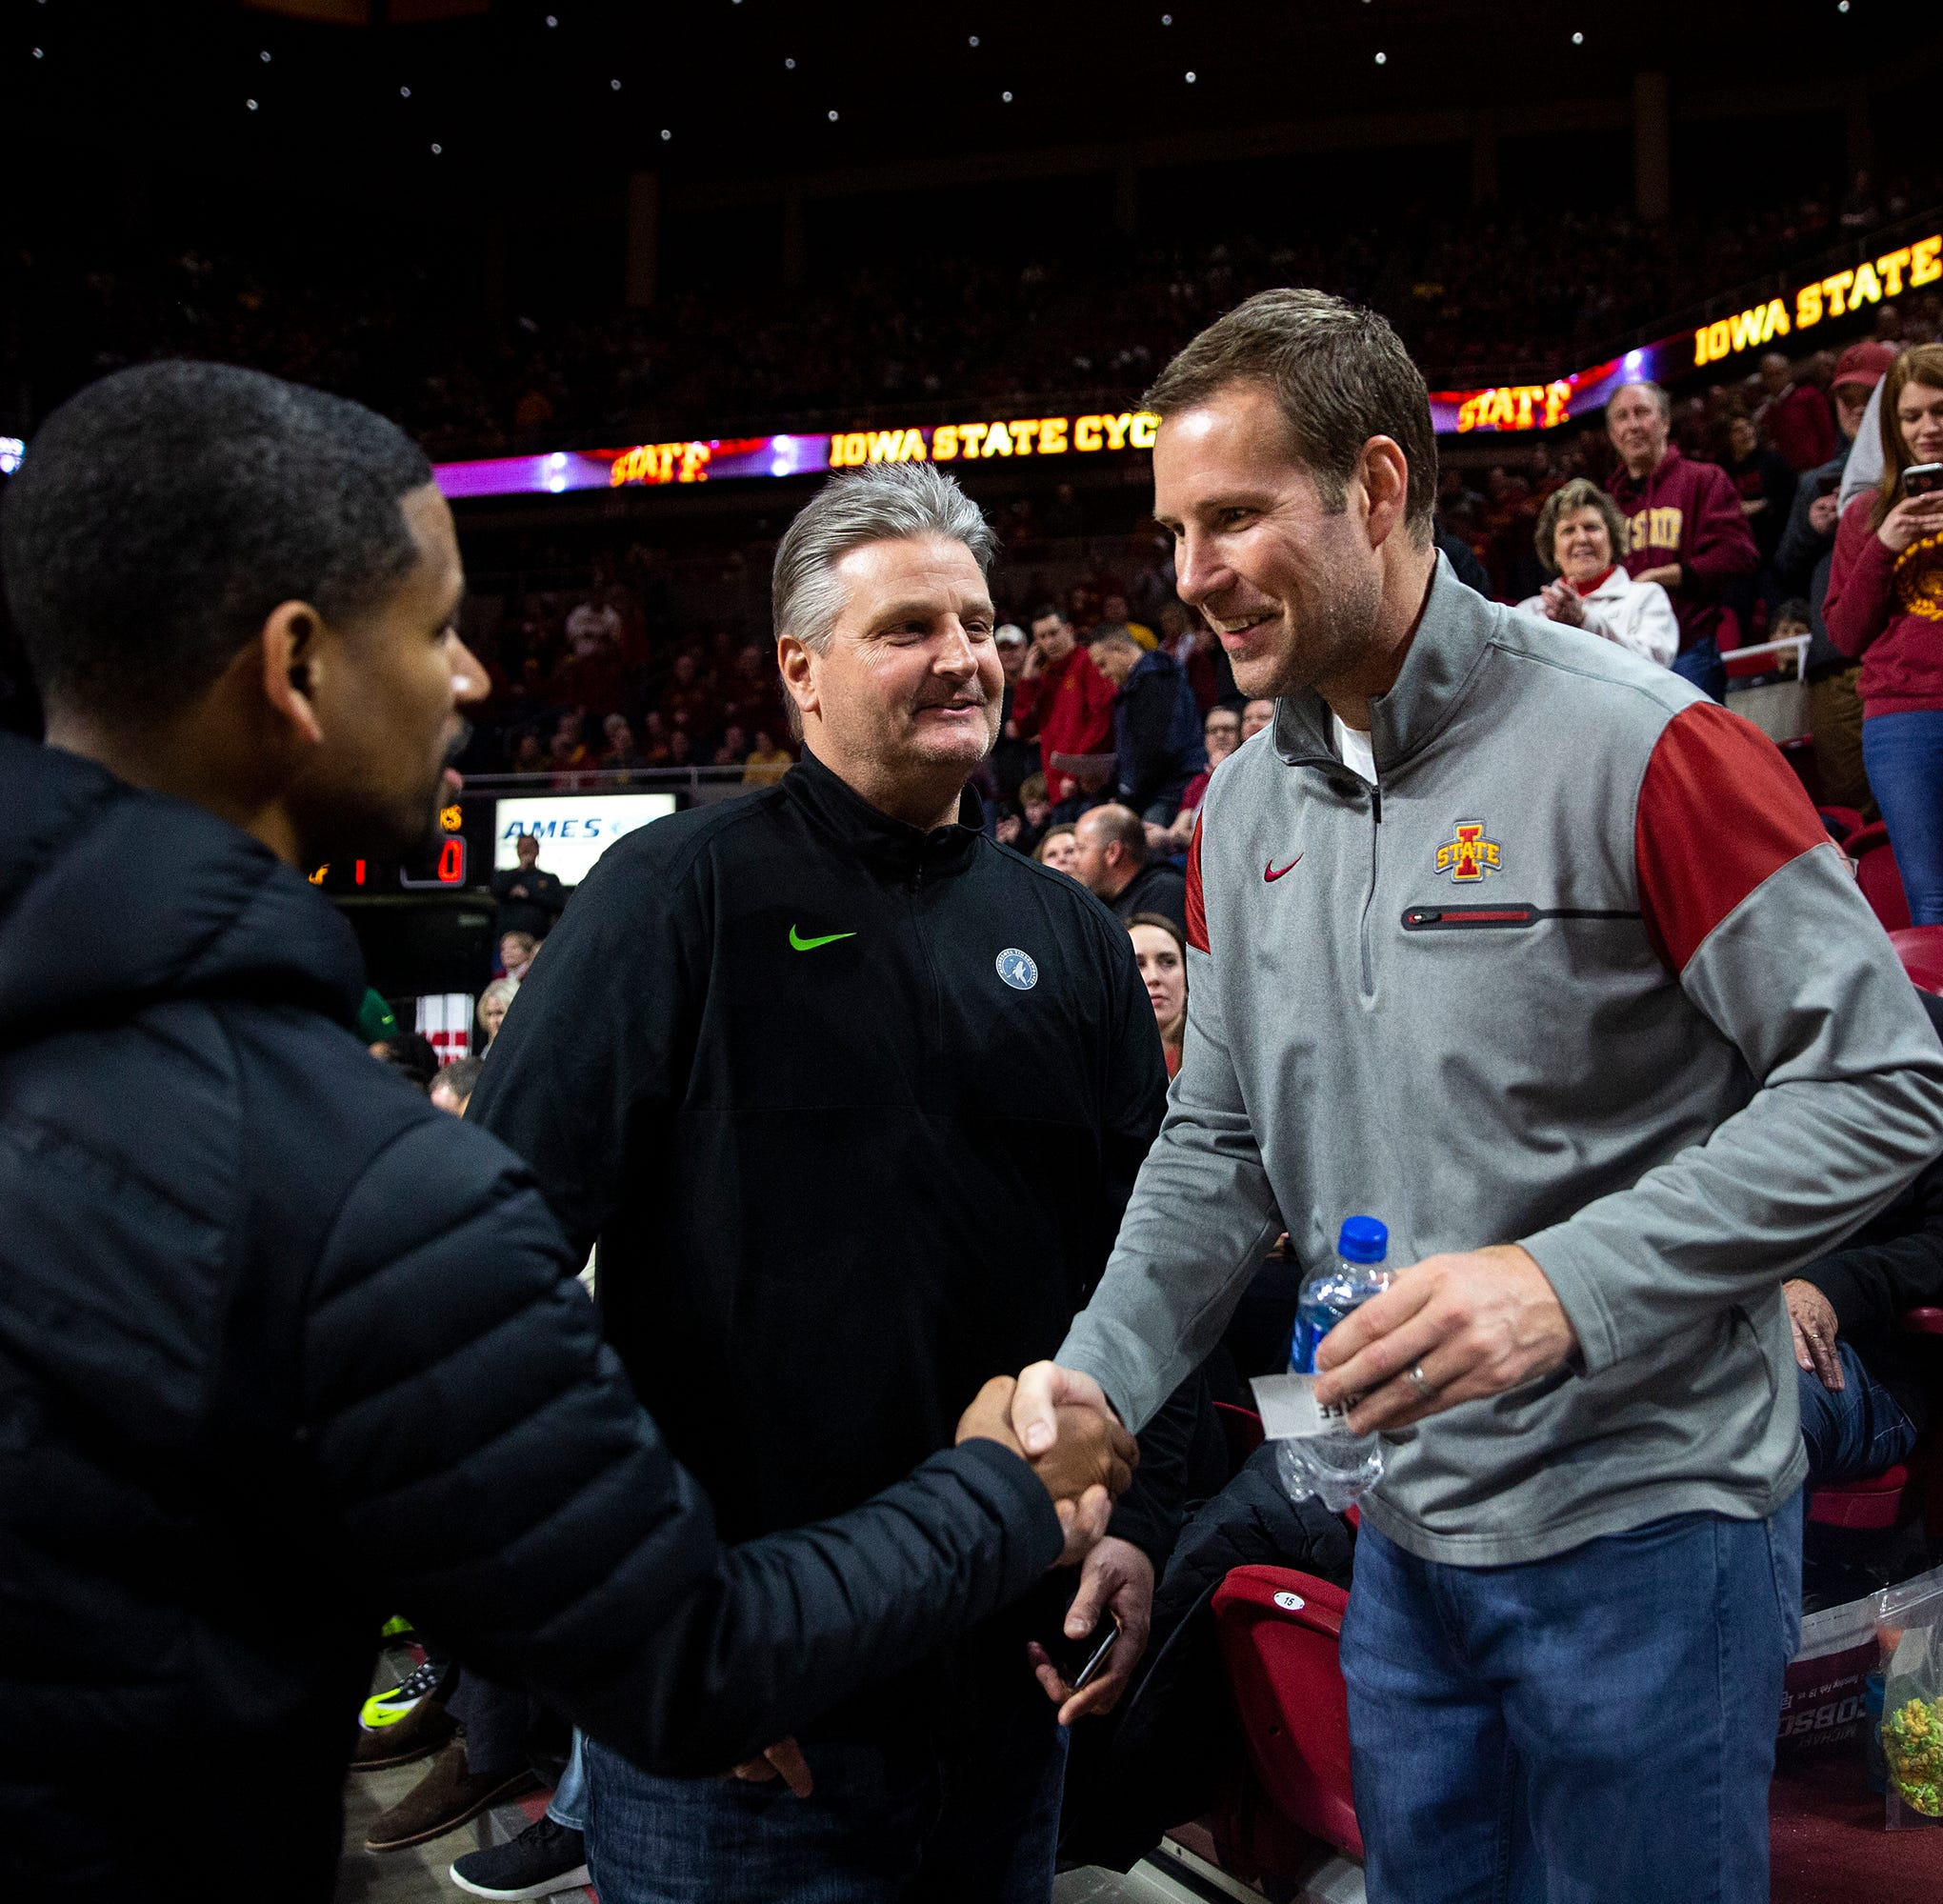 Peterson: Fred Hoiberg's next coaching move could include college basketball's who's-who